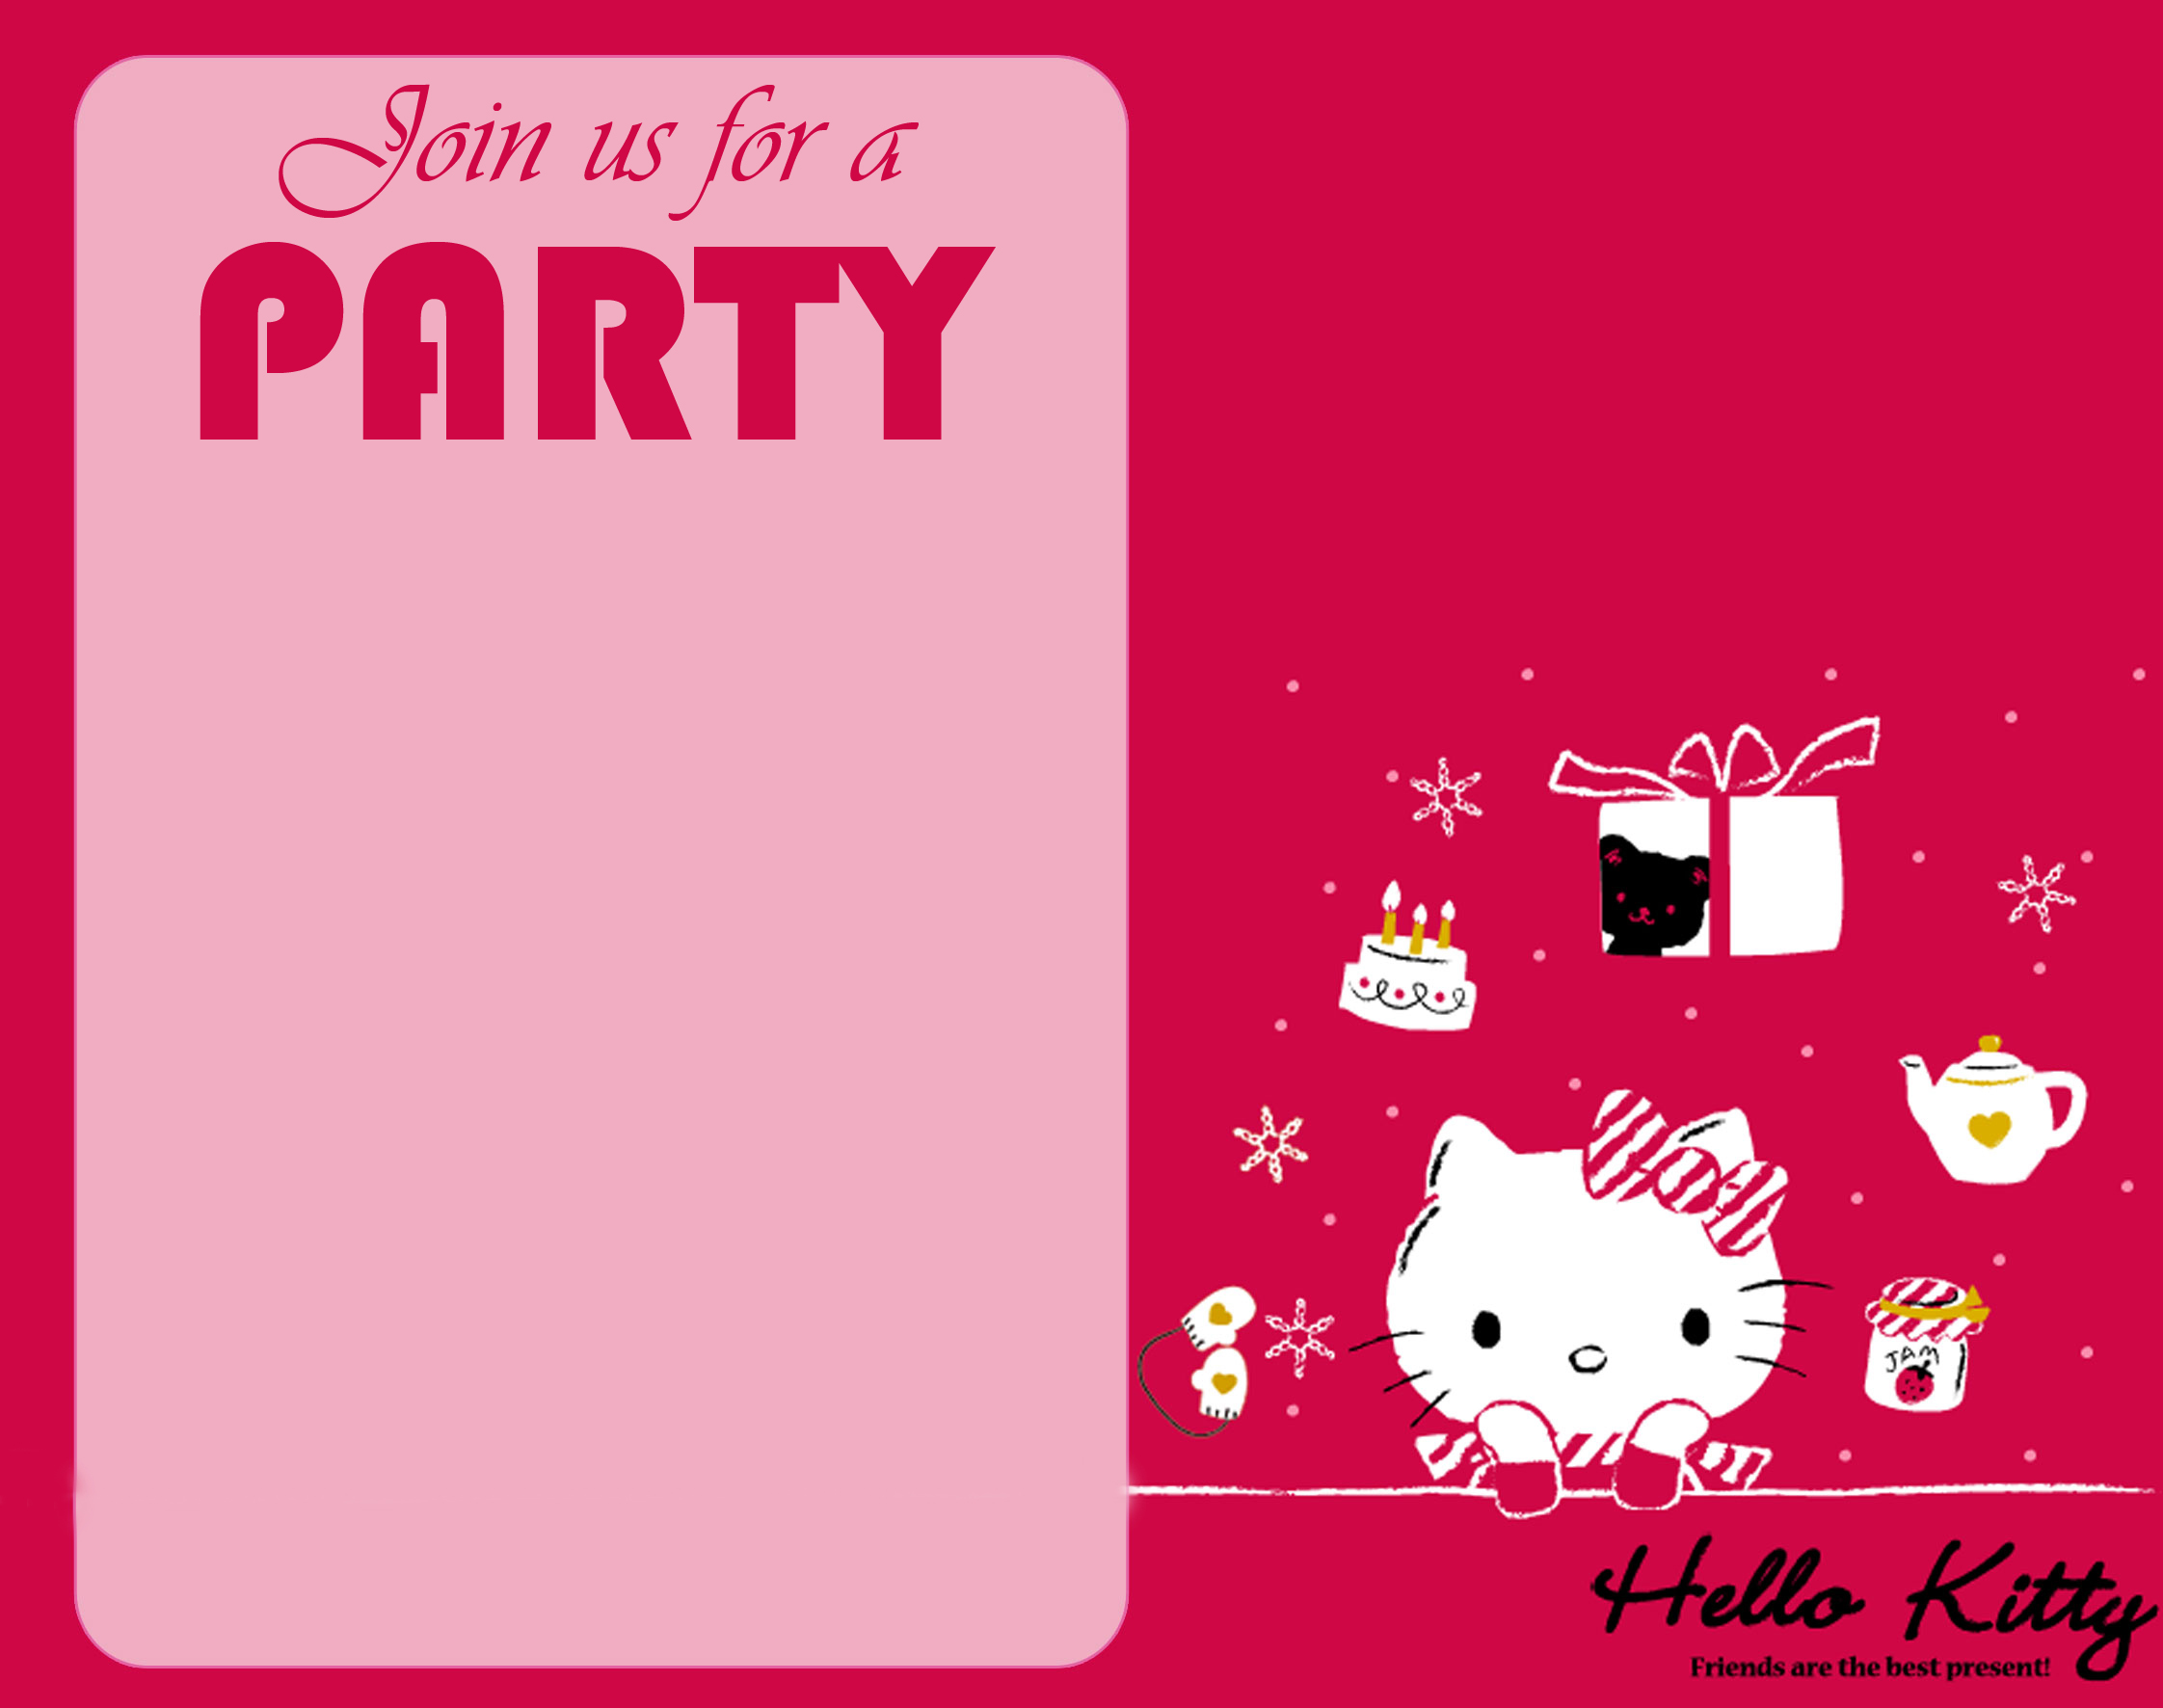 Free hello kitty wallpaper for party invitation card design hd its a good idea to use a hello kitty theme for designing an invitation card for party such as this one a pink colored party invitation card design with stopboris Image collections